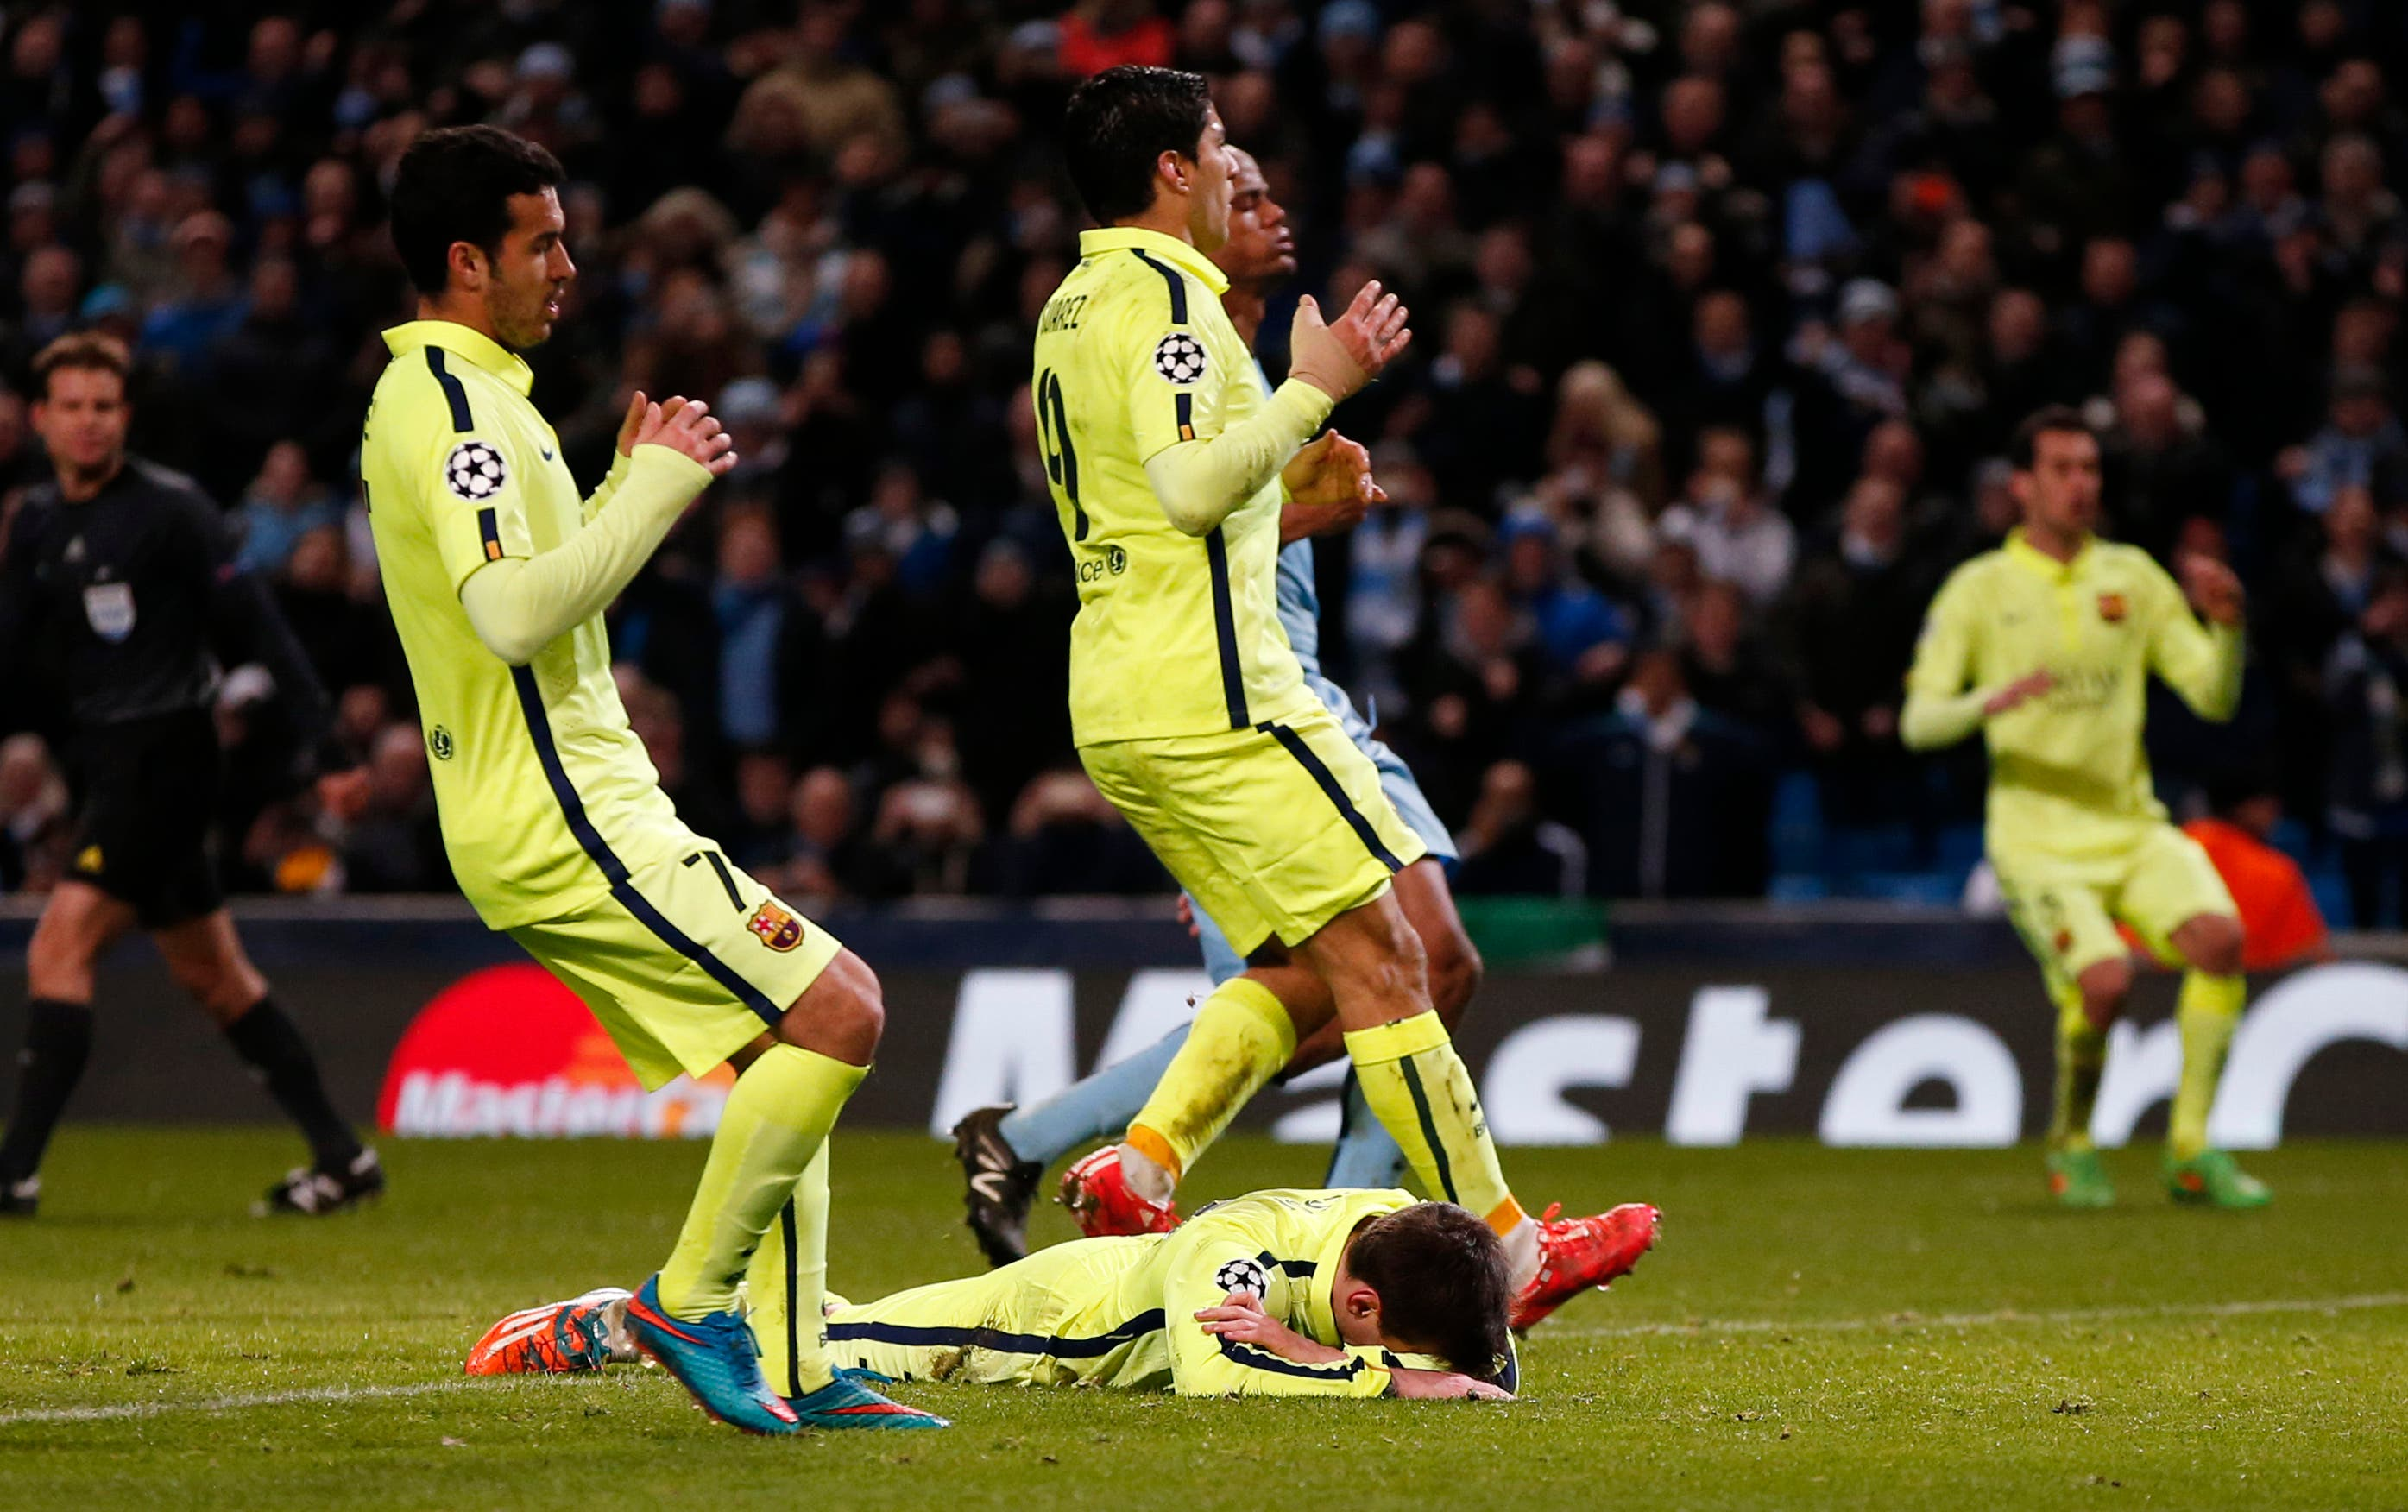 Barcelona's Lionel Messi looks dejected after having his penalty saved. (Reuters)